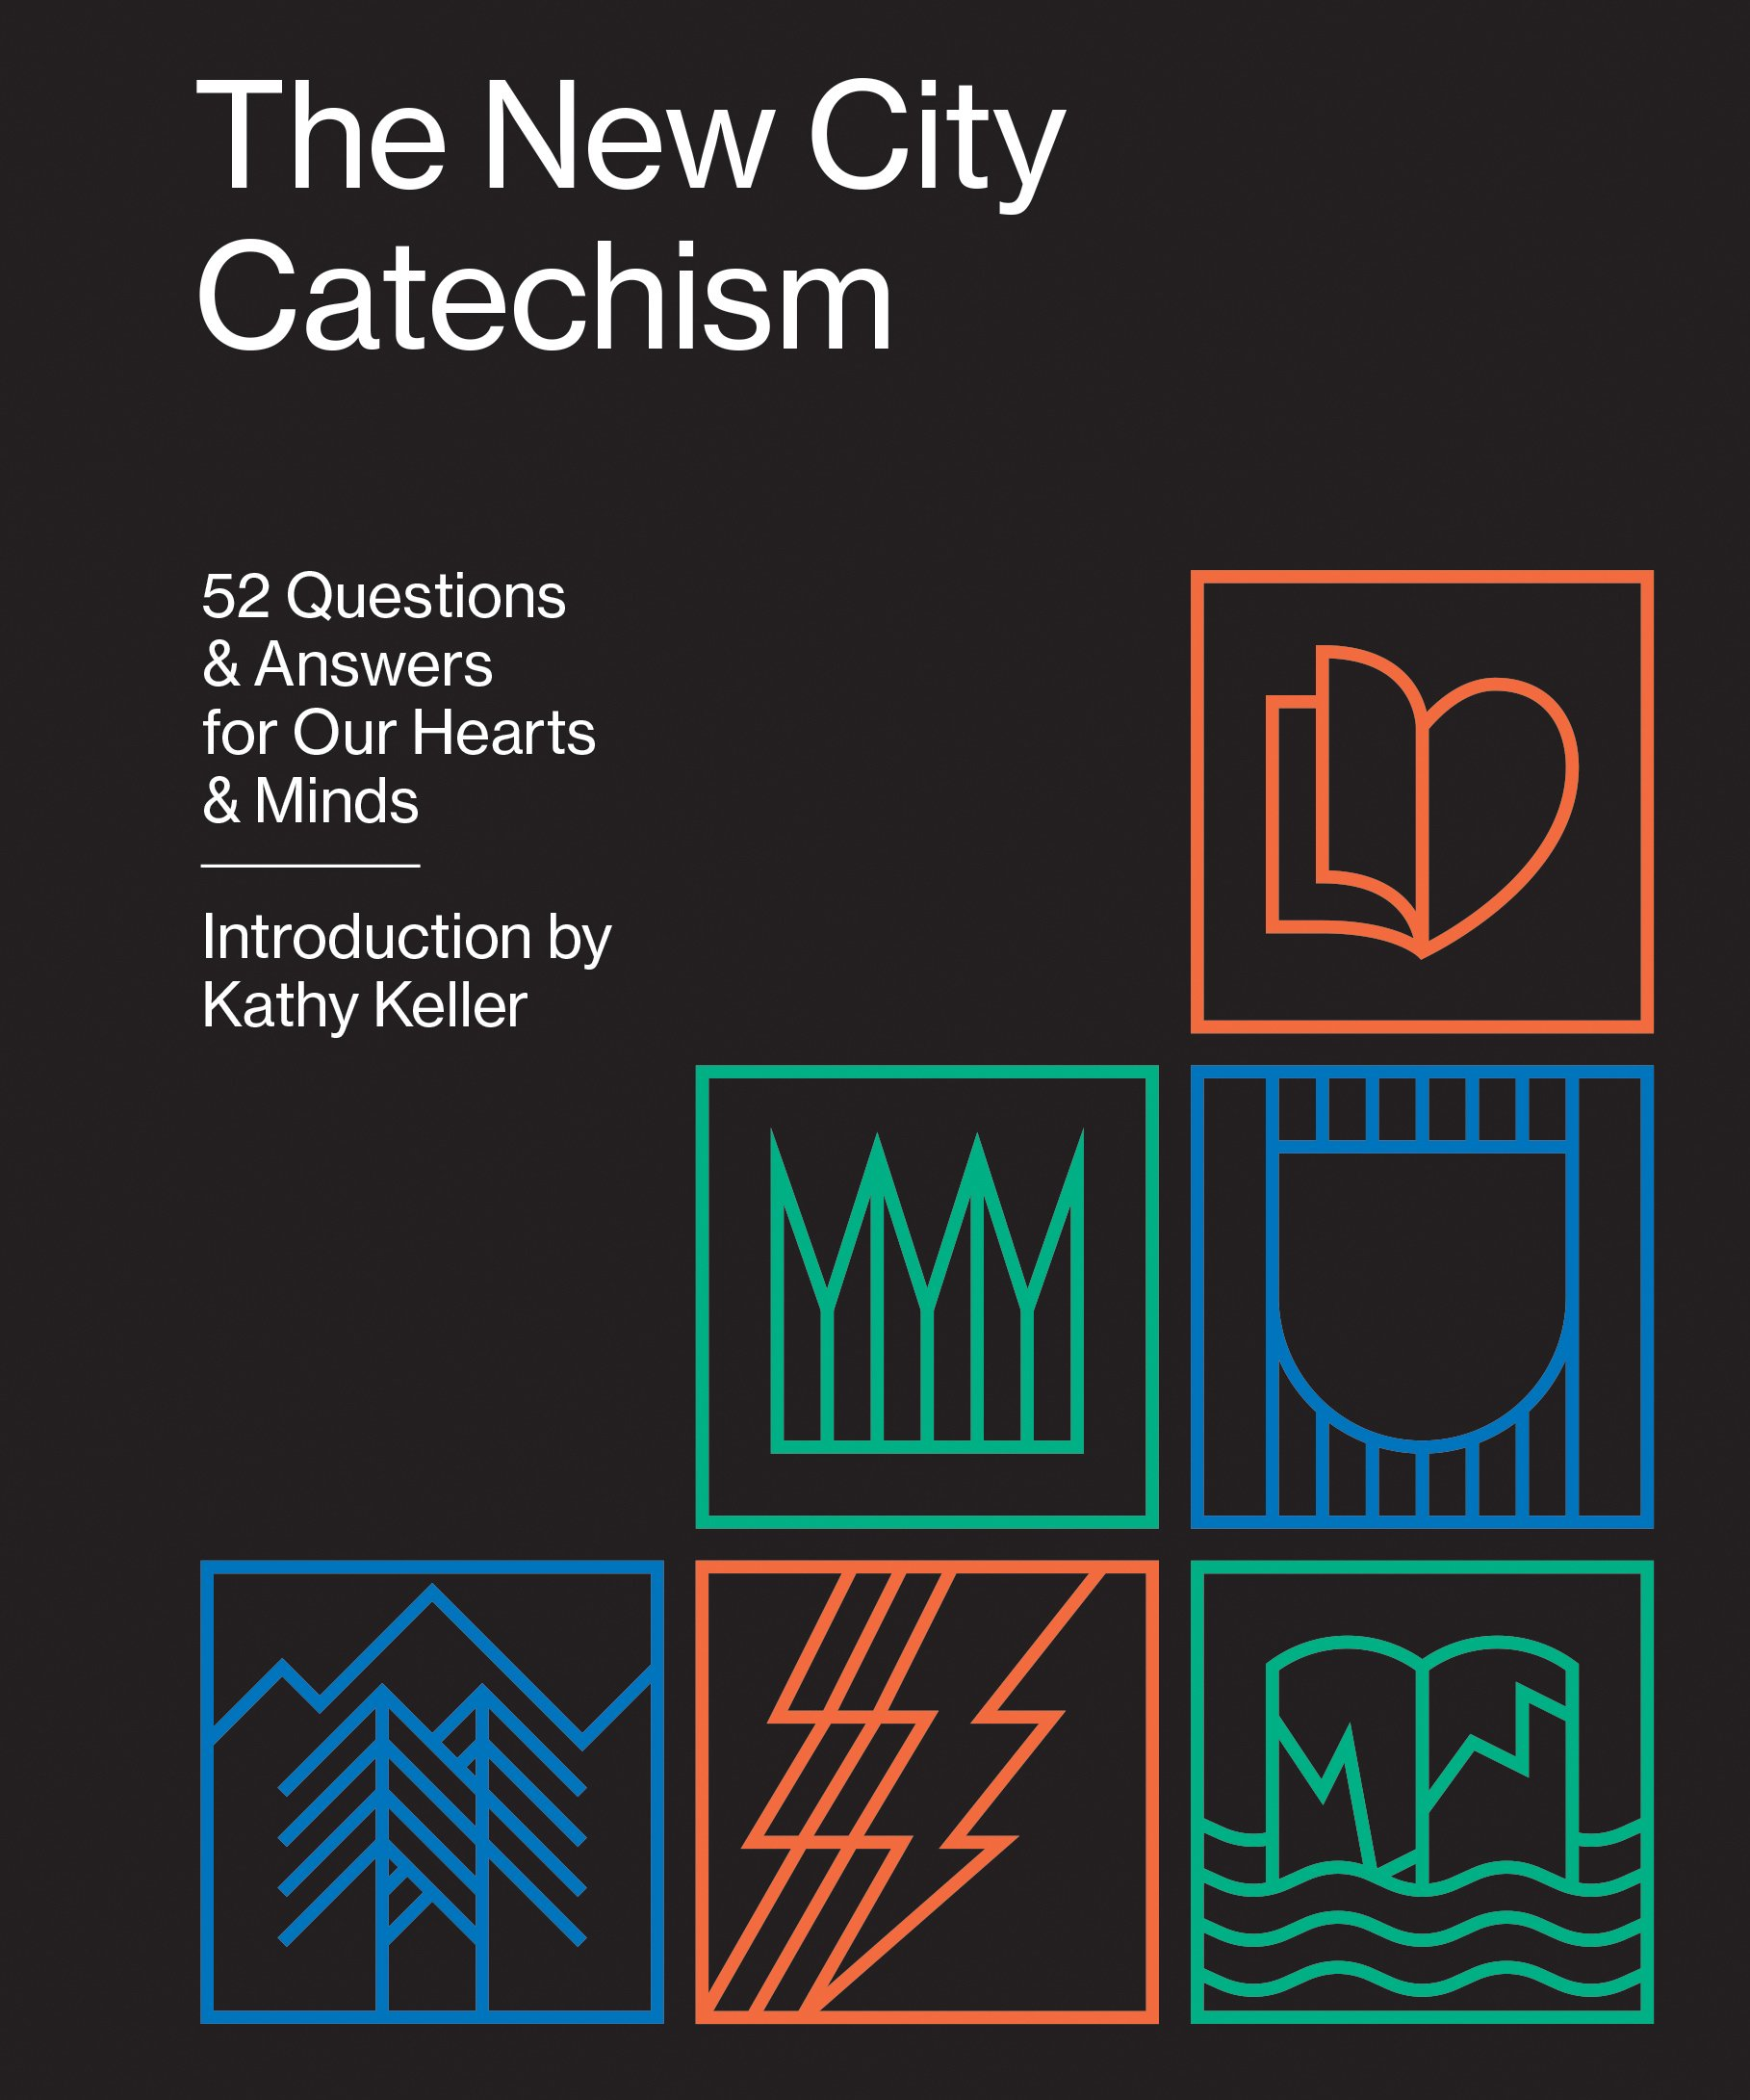 The New City Catechism: 52 Questions and Answers for Our Hearts and Minds (The Gospel Coalition) pdf